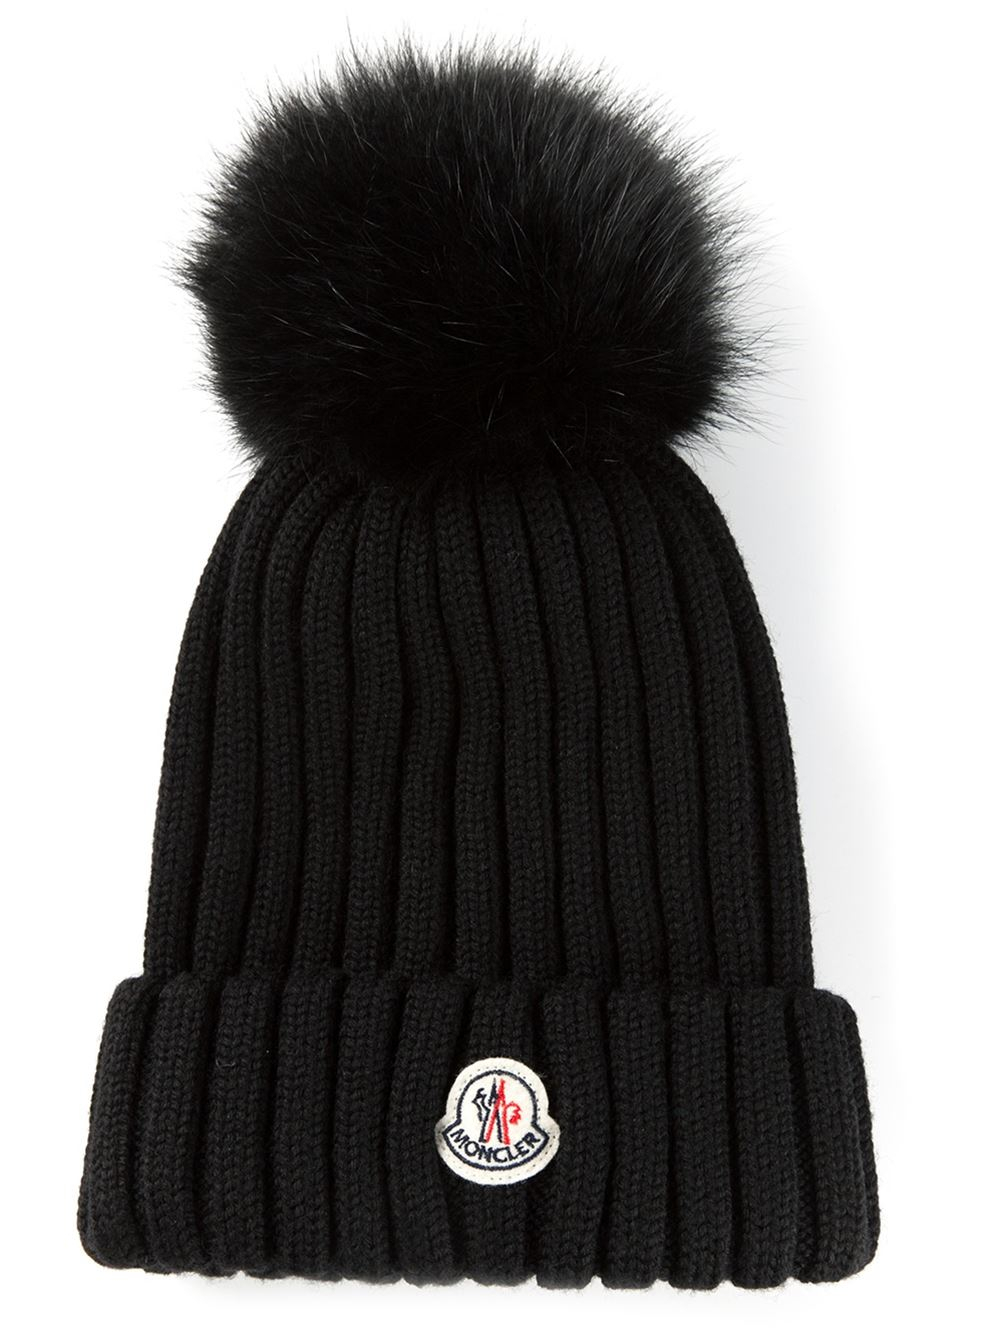 6ce54512fe3 Moncler Bobble Top Beanie in Black - Lyst